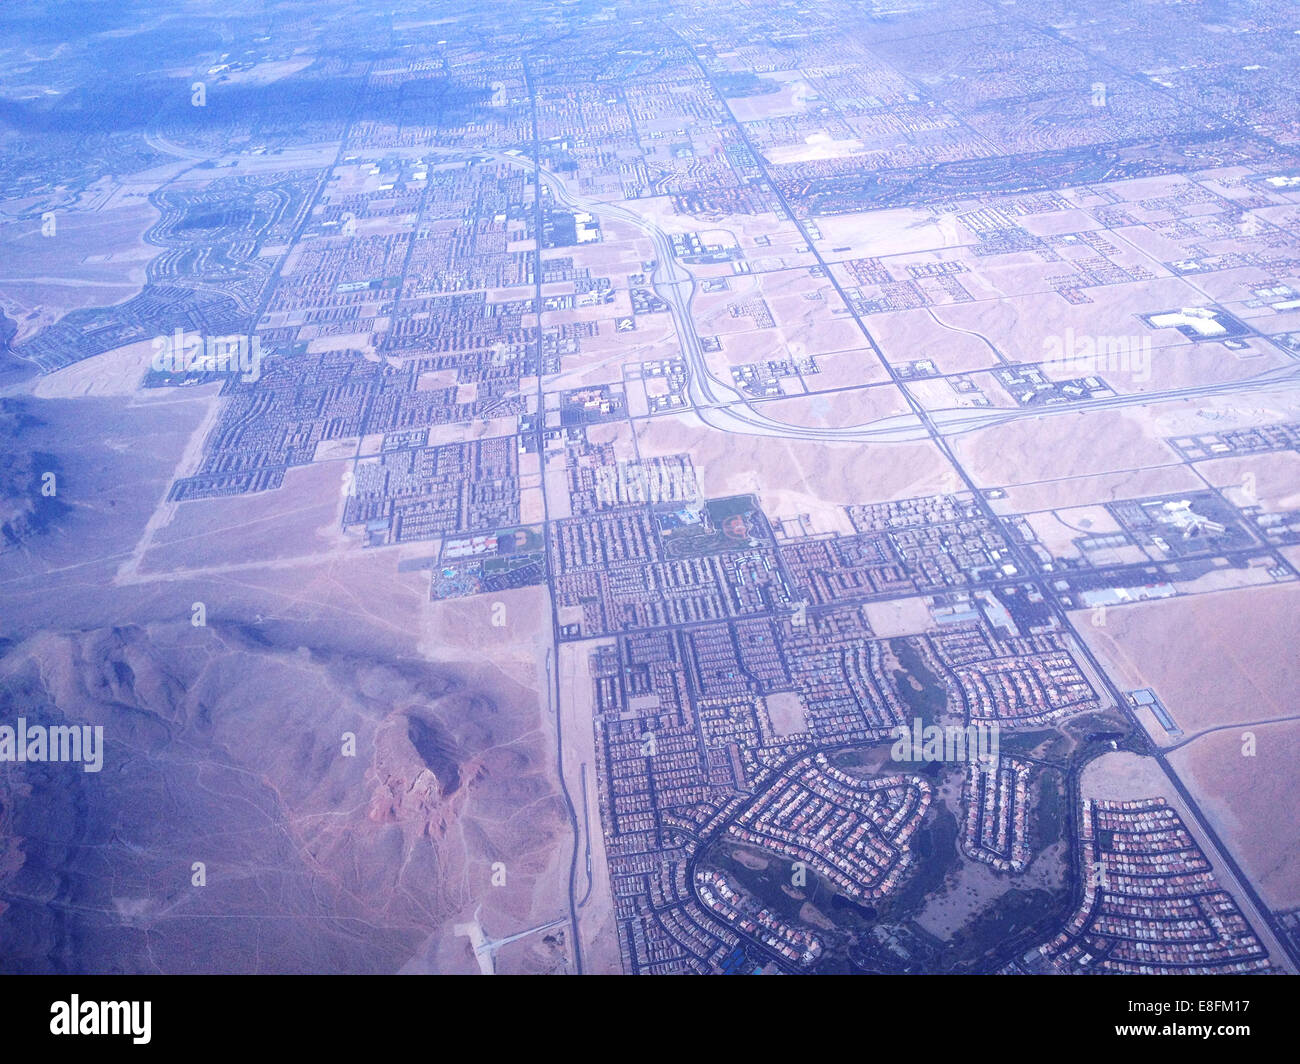 Las Vegas, Nevada, United States of America Great Las Vegas From Above - Stock Image